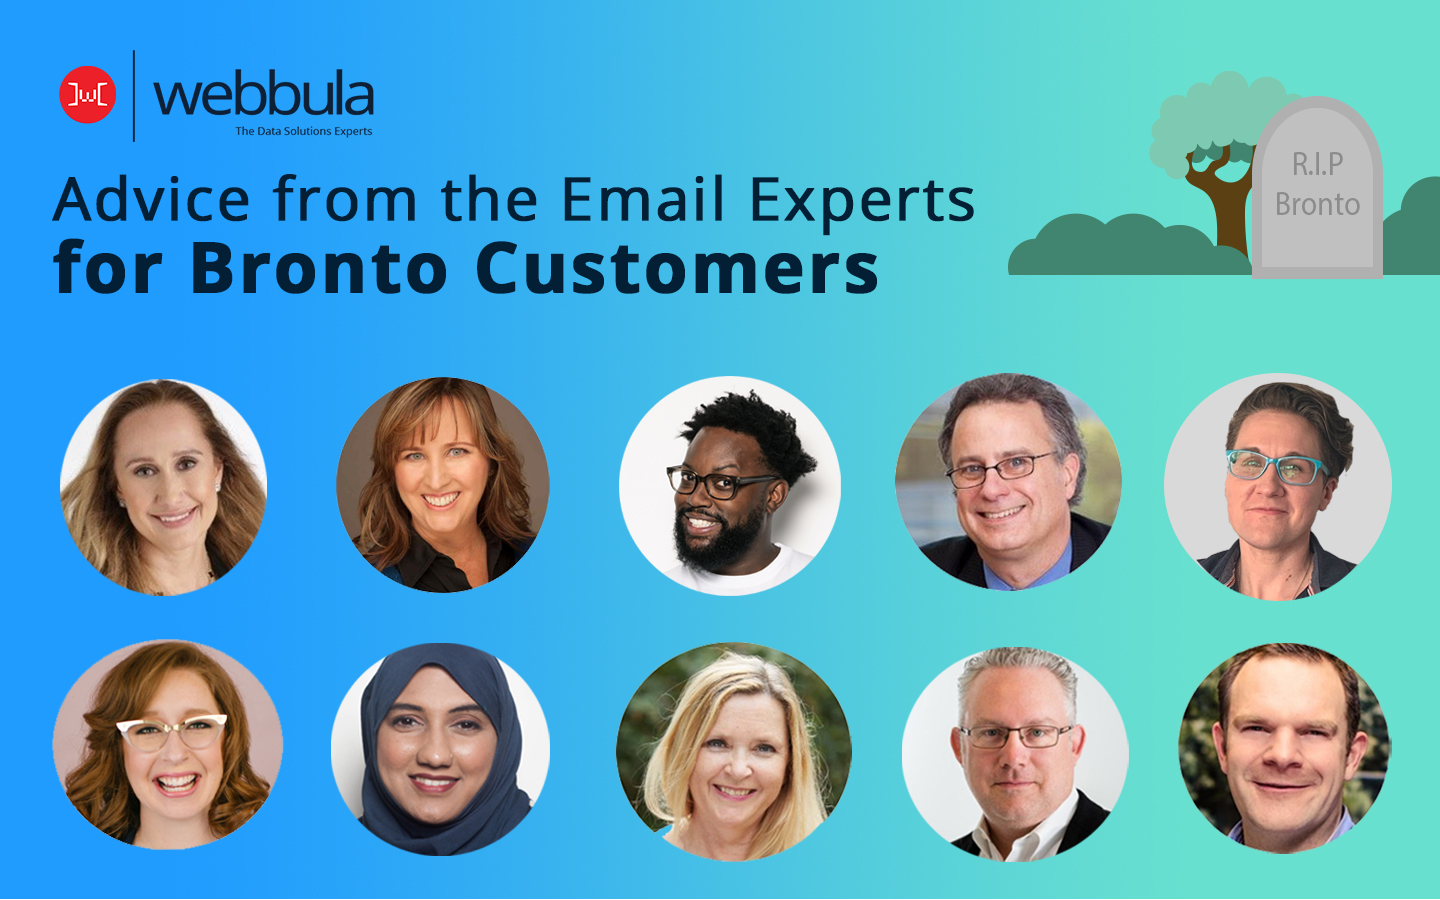 Advice from the Email Experts for Bronto Customers